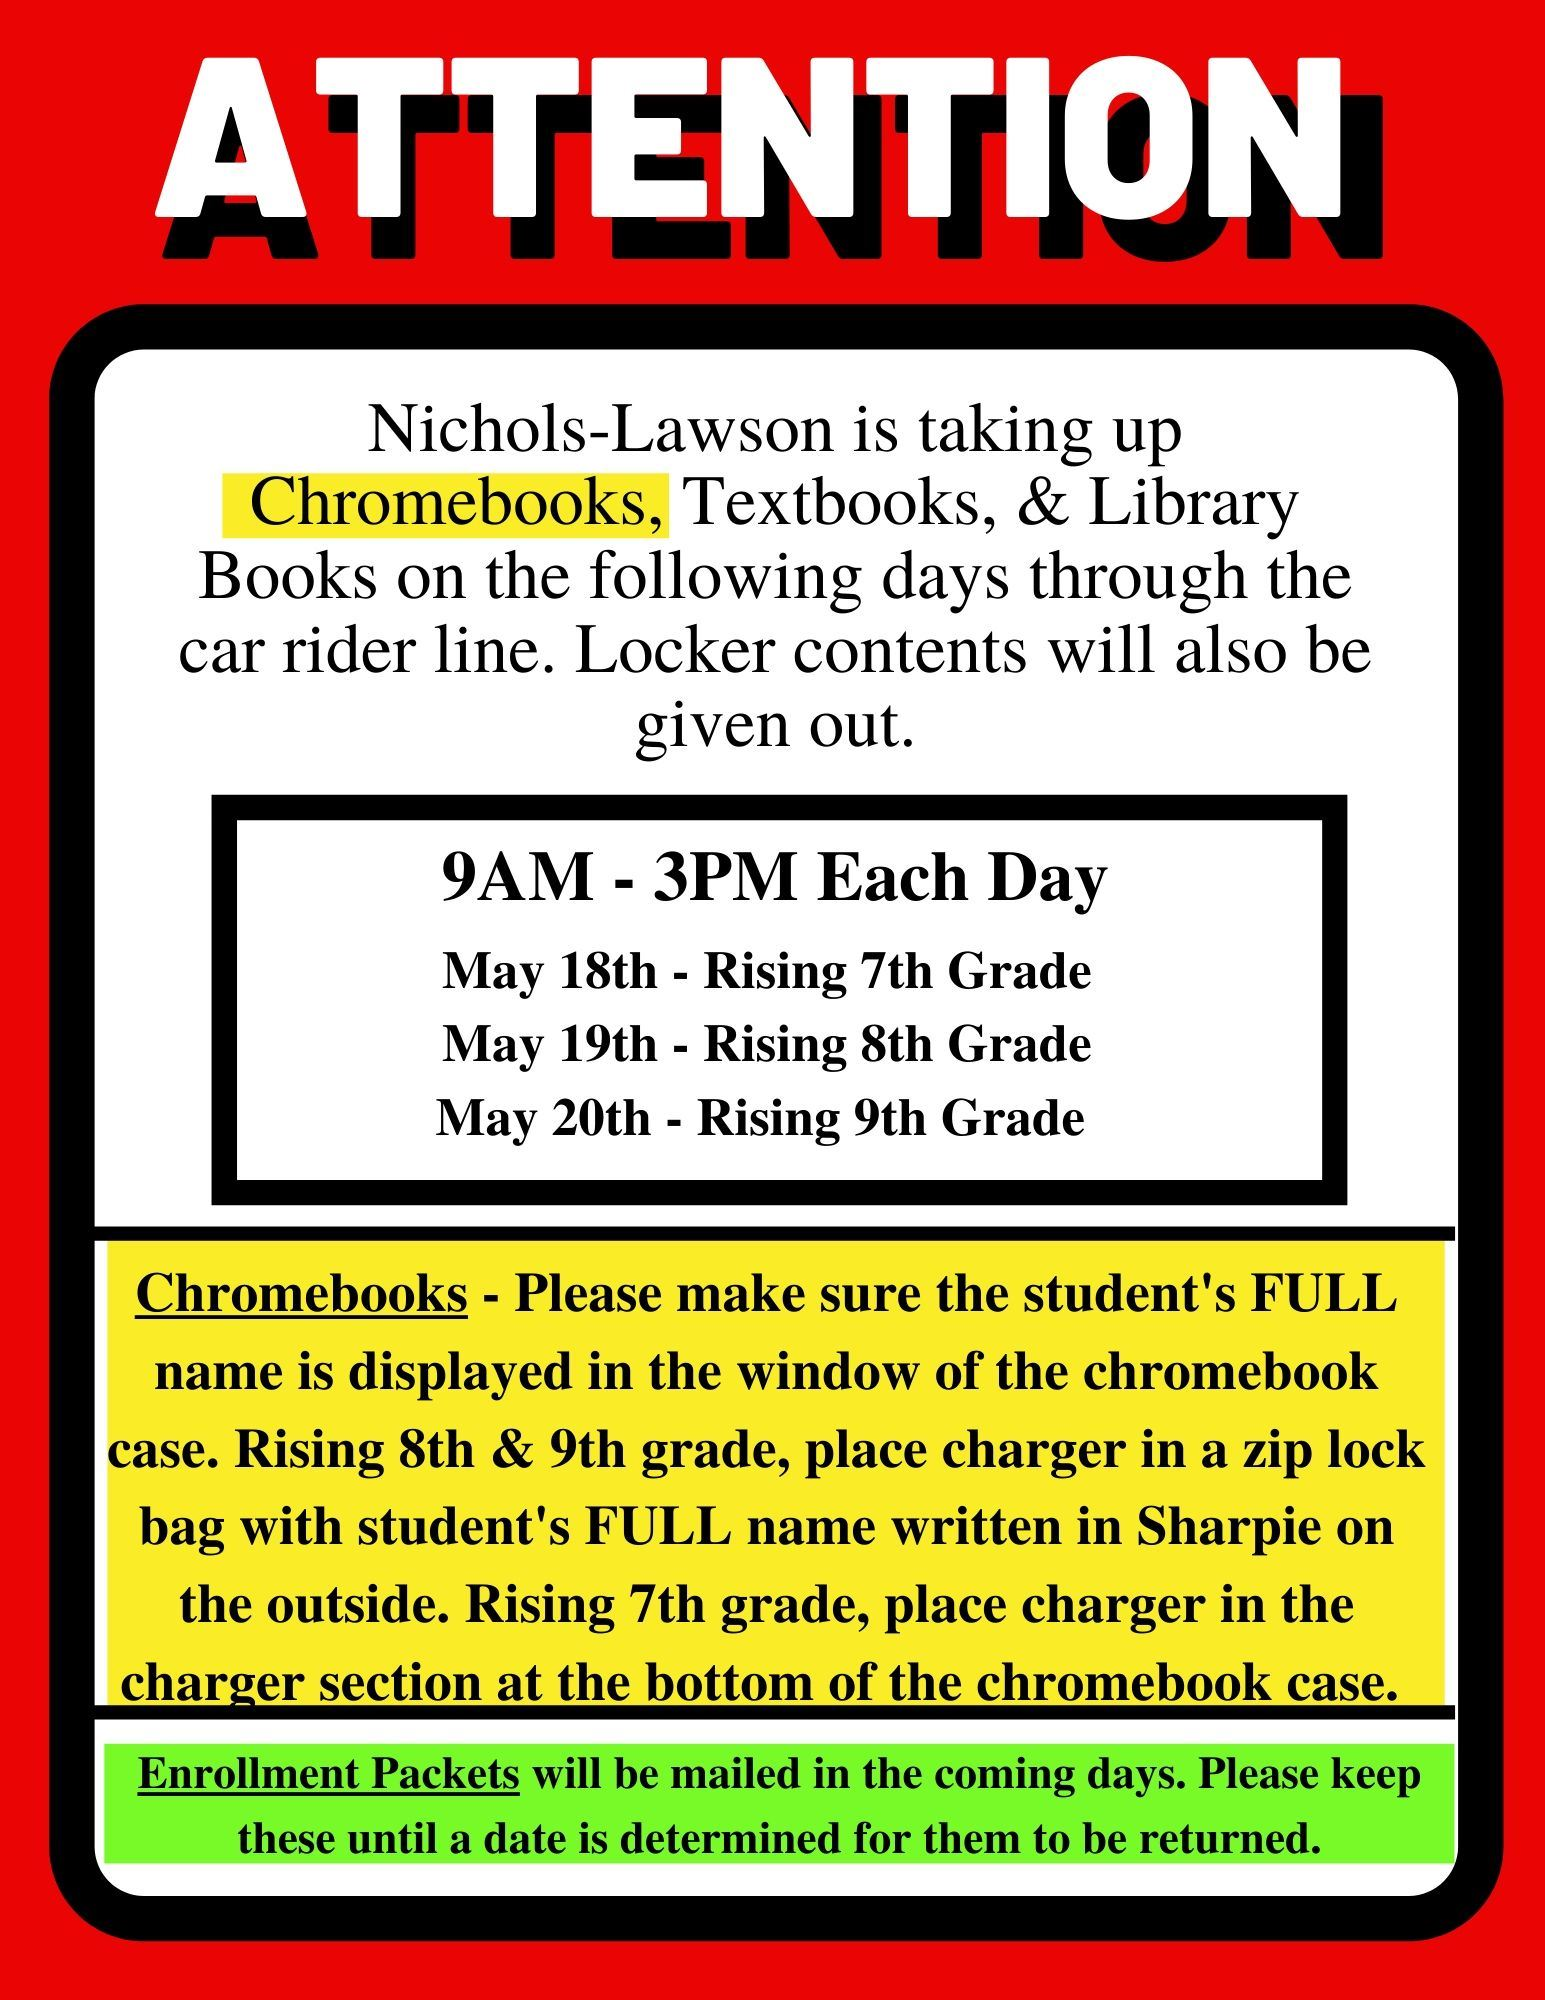 Chromebook/Textbook Takeup